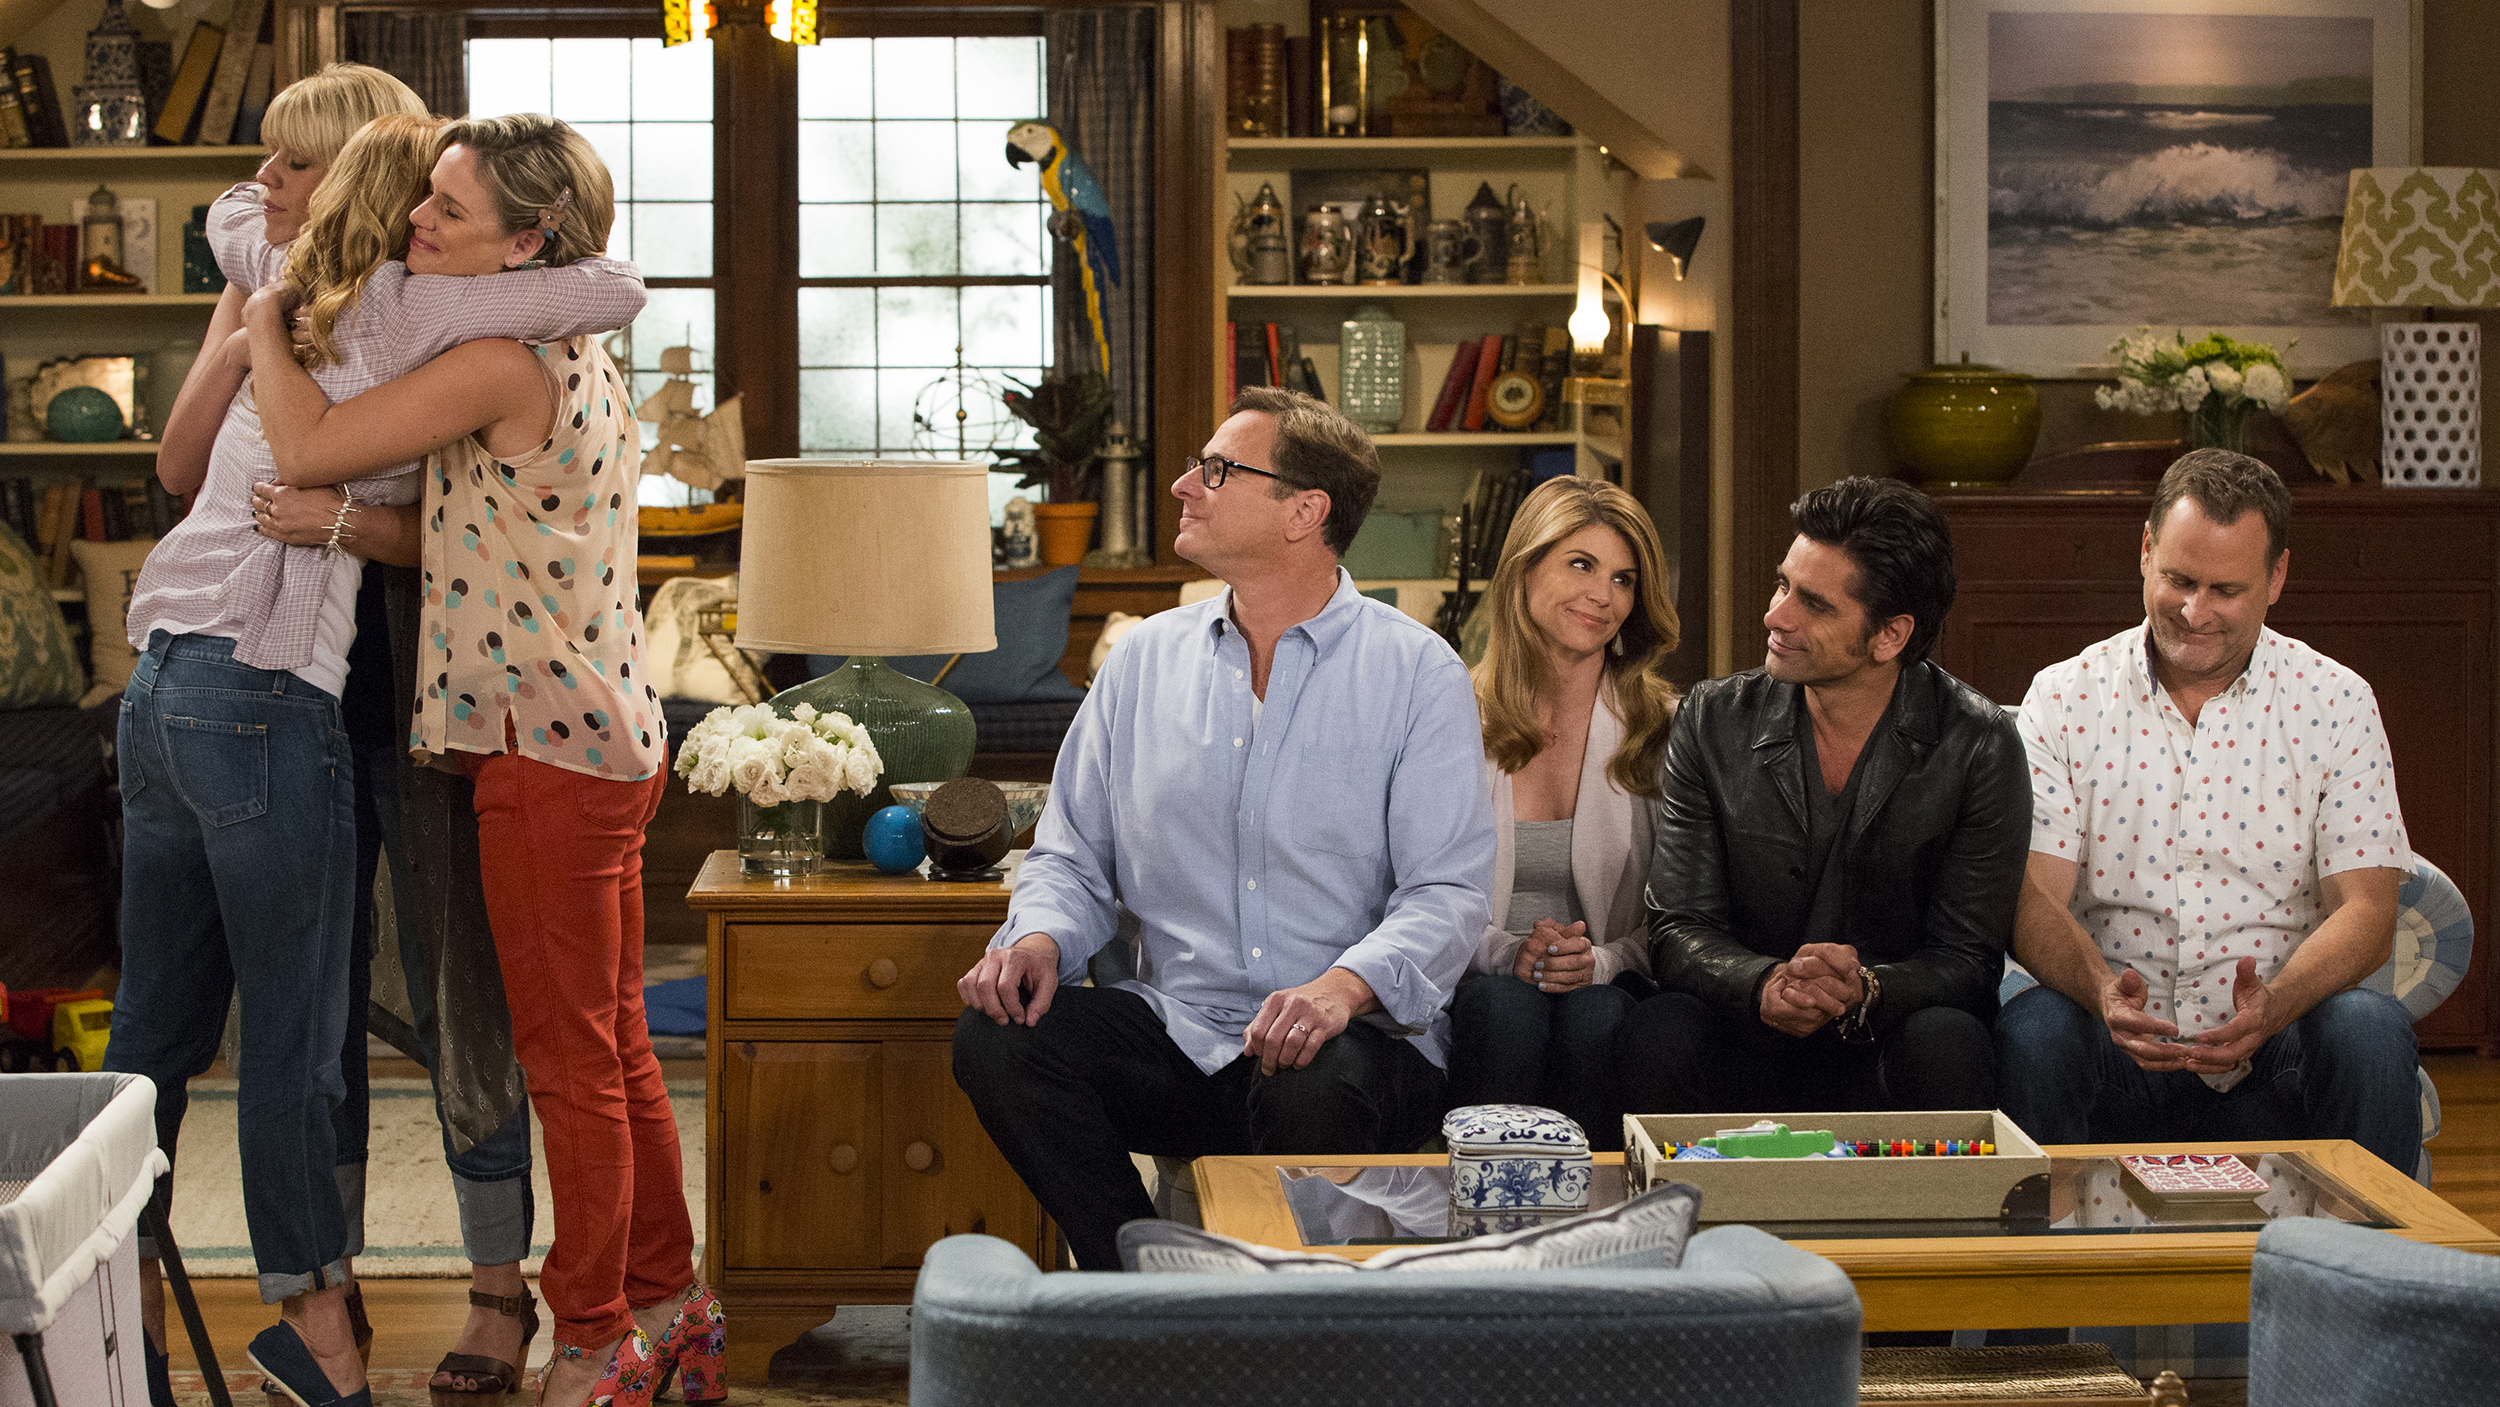 First Fuller House photos show Tanners reunited in Netflix